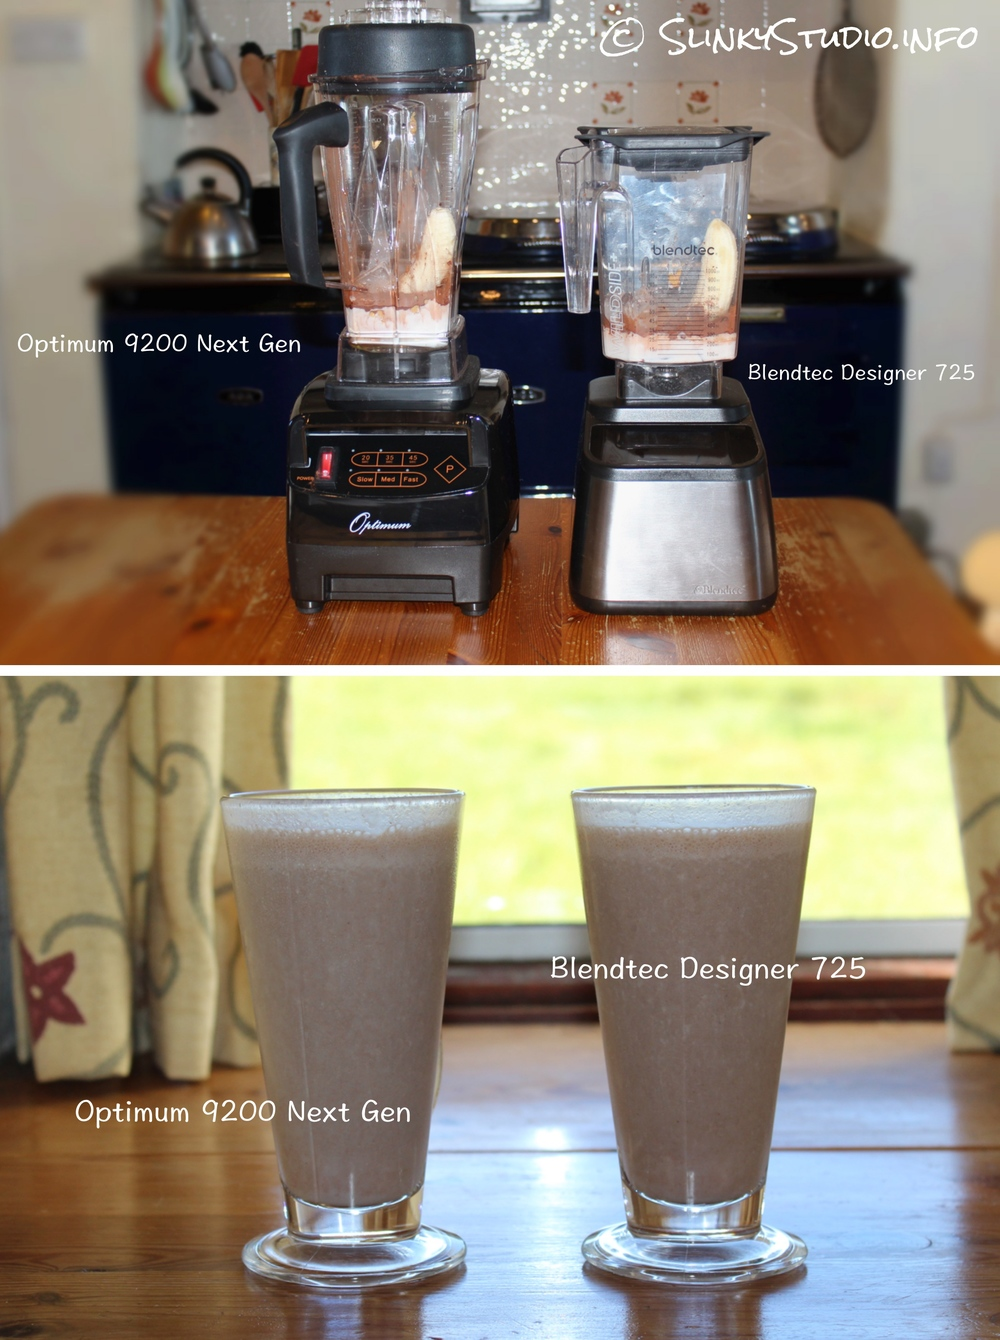 Optimum 9200 Next Generation vs Blendtec Designer 725 Blender